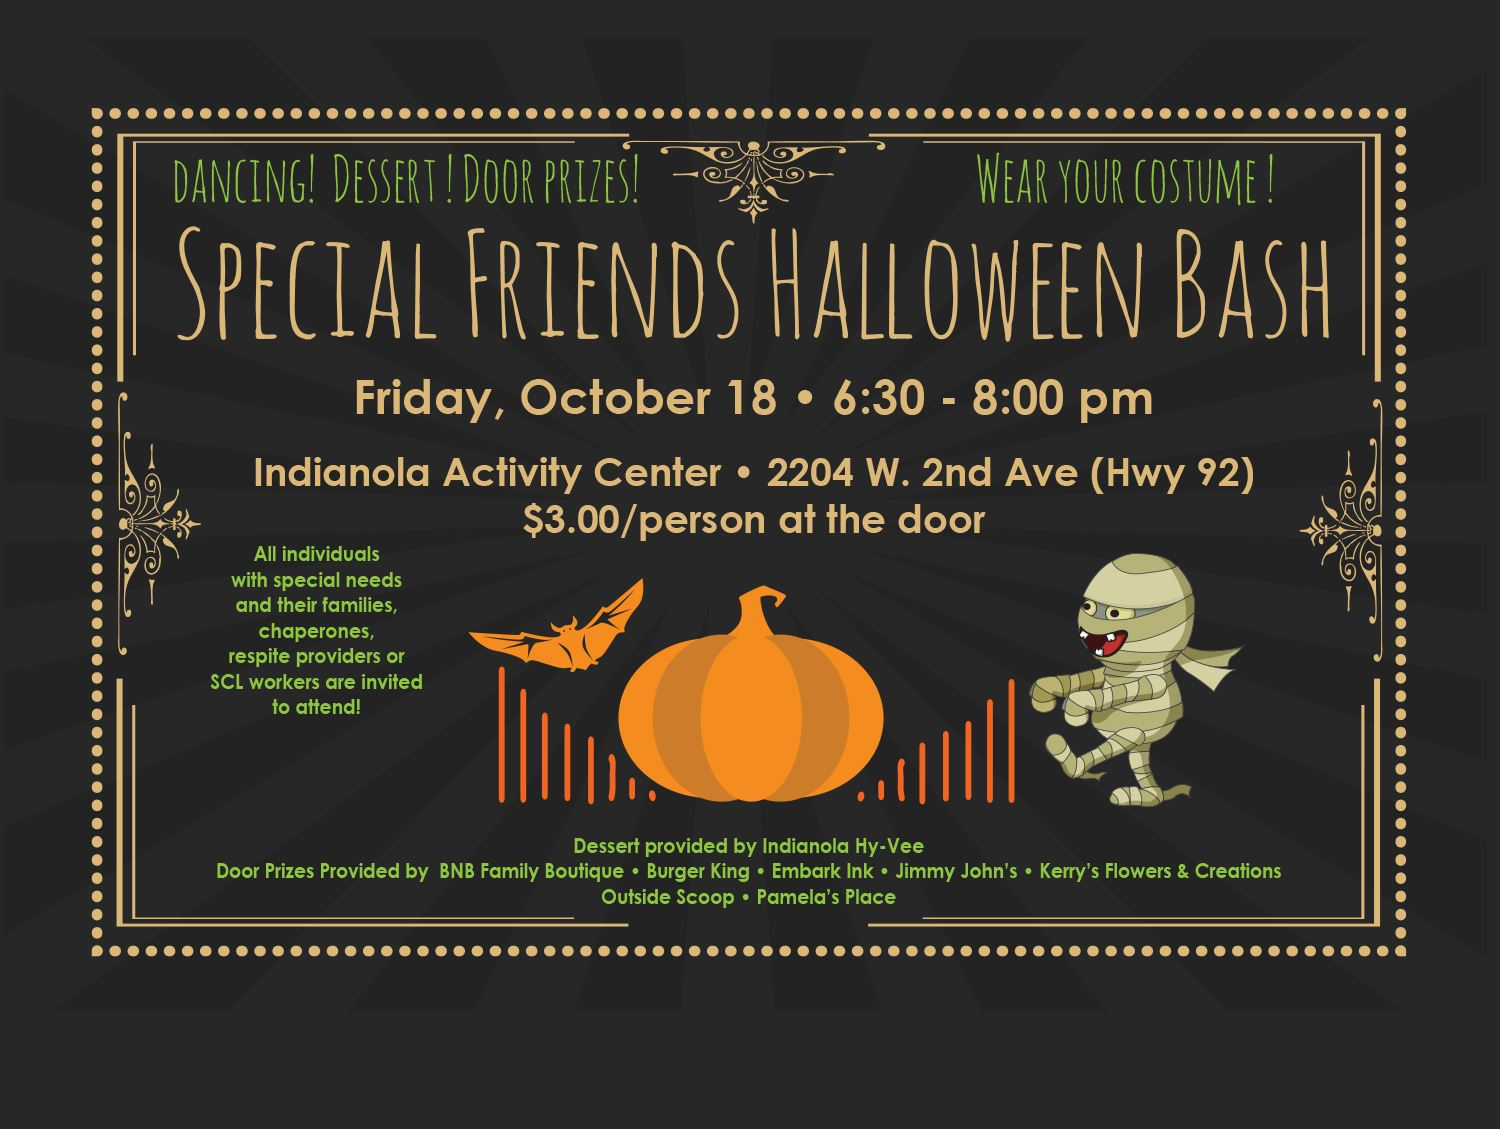 Special Friends Halloween